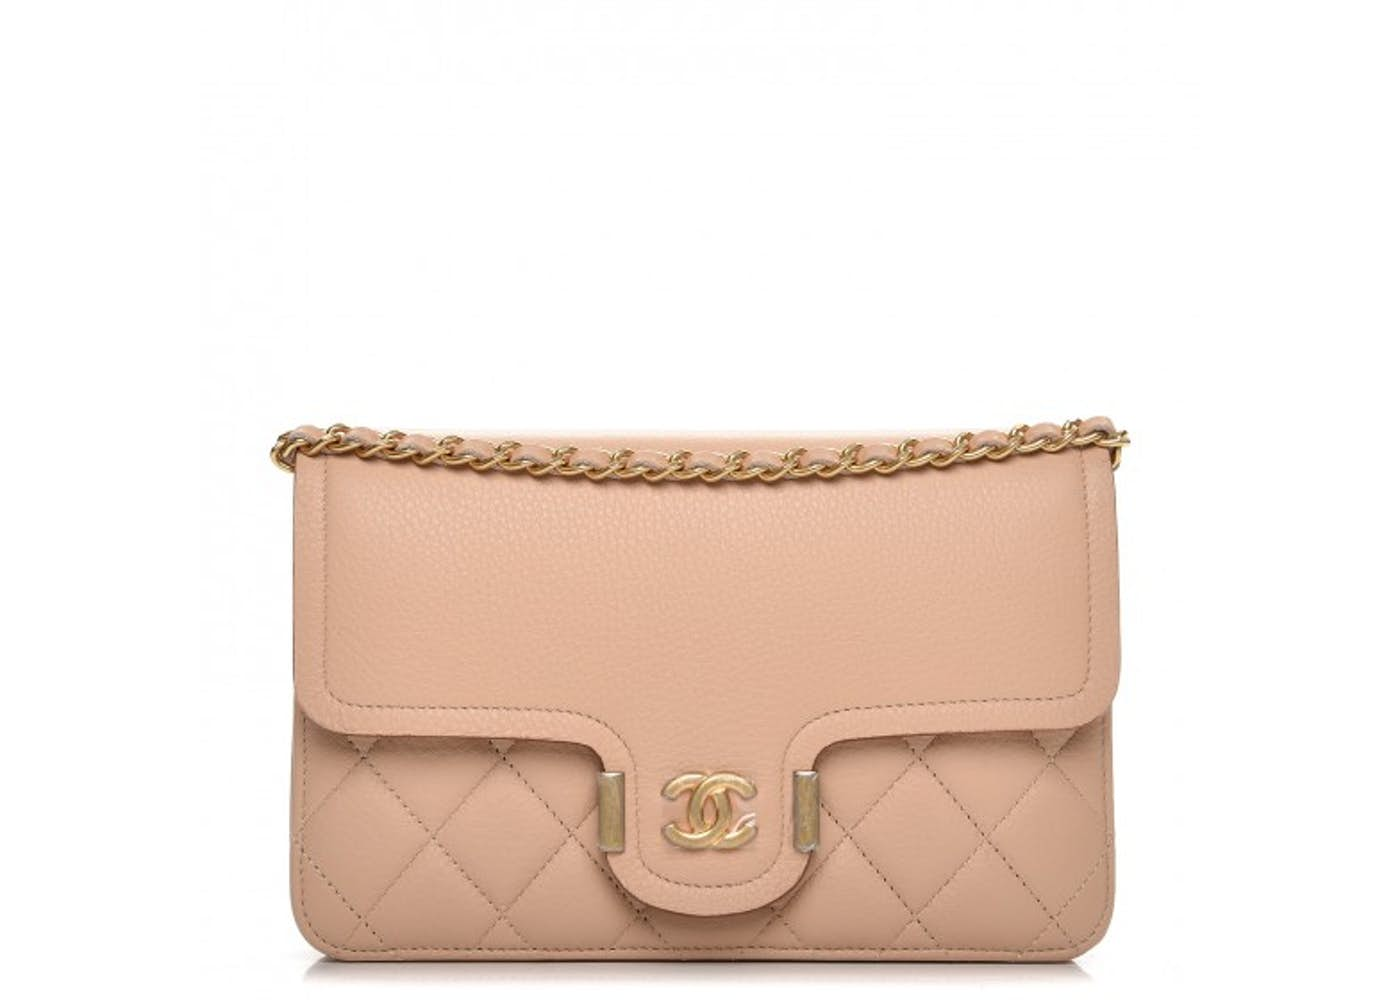 e3762c1b8d6c Chanel Wallet On Chain Beige   Stanford Center for Opportunity ...